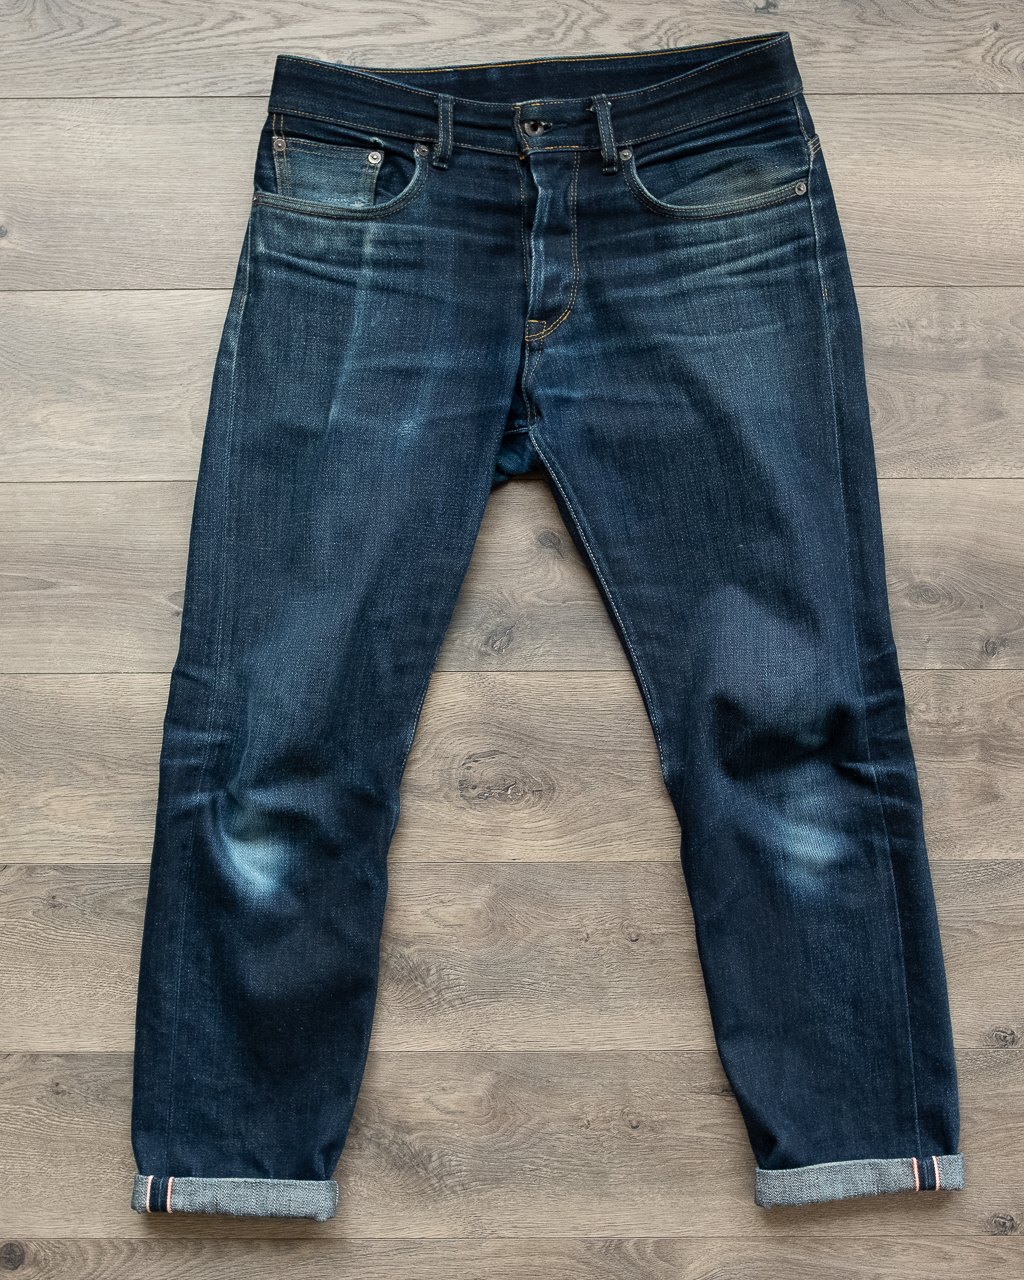 railcar x034 denim full front faded